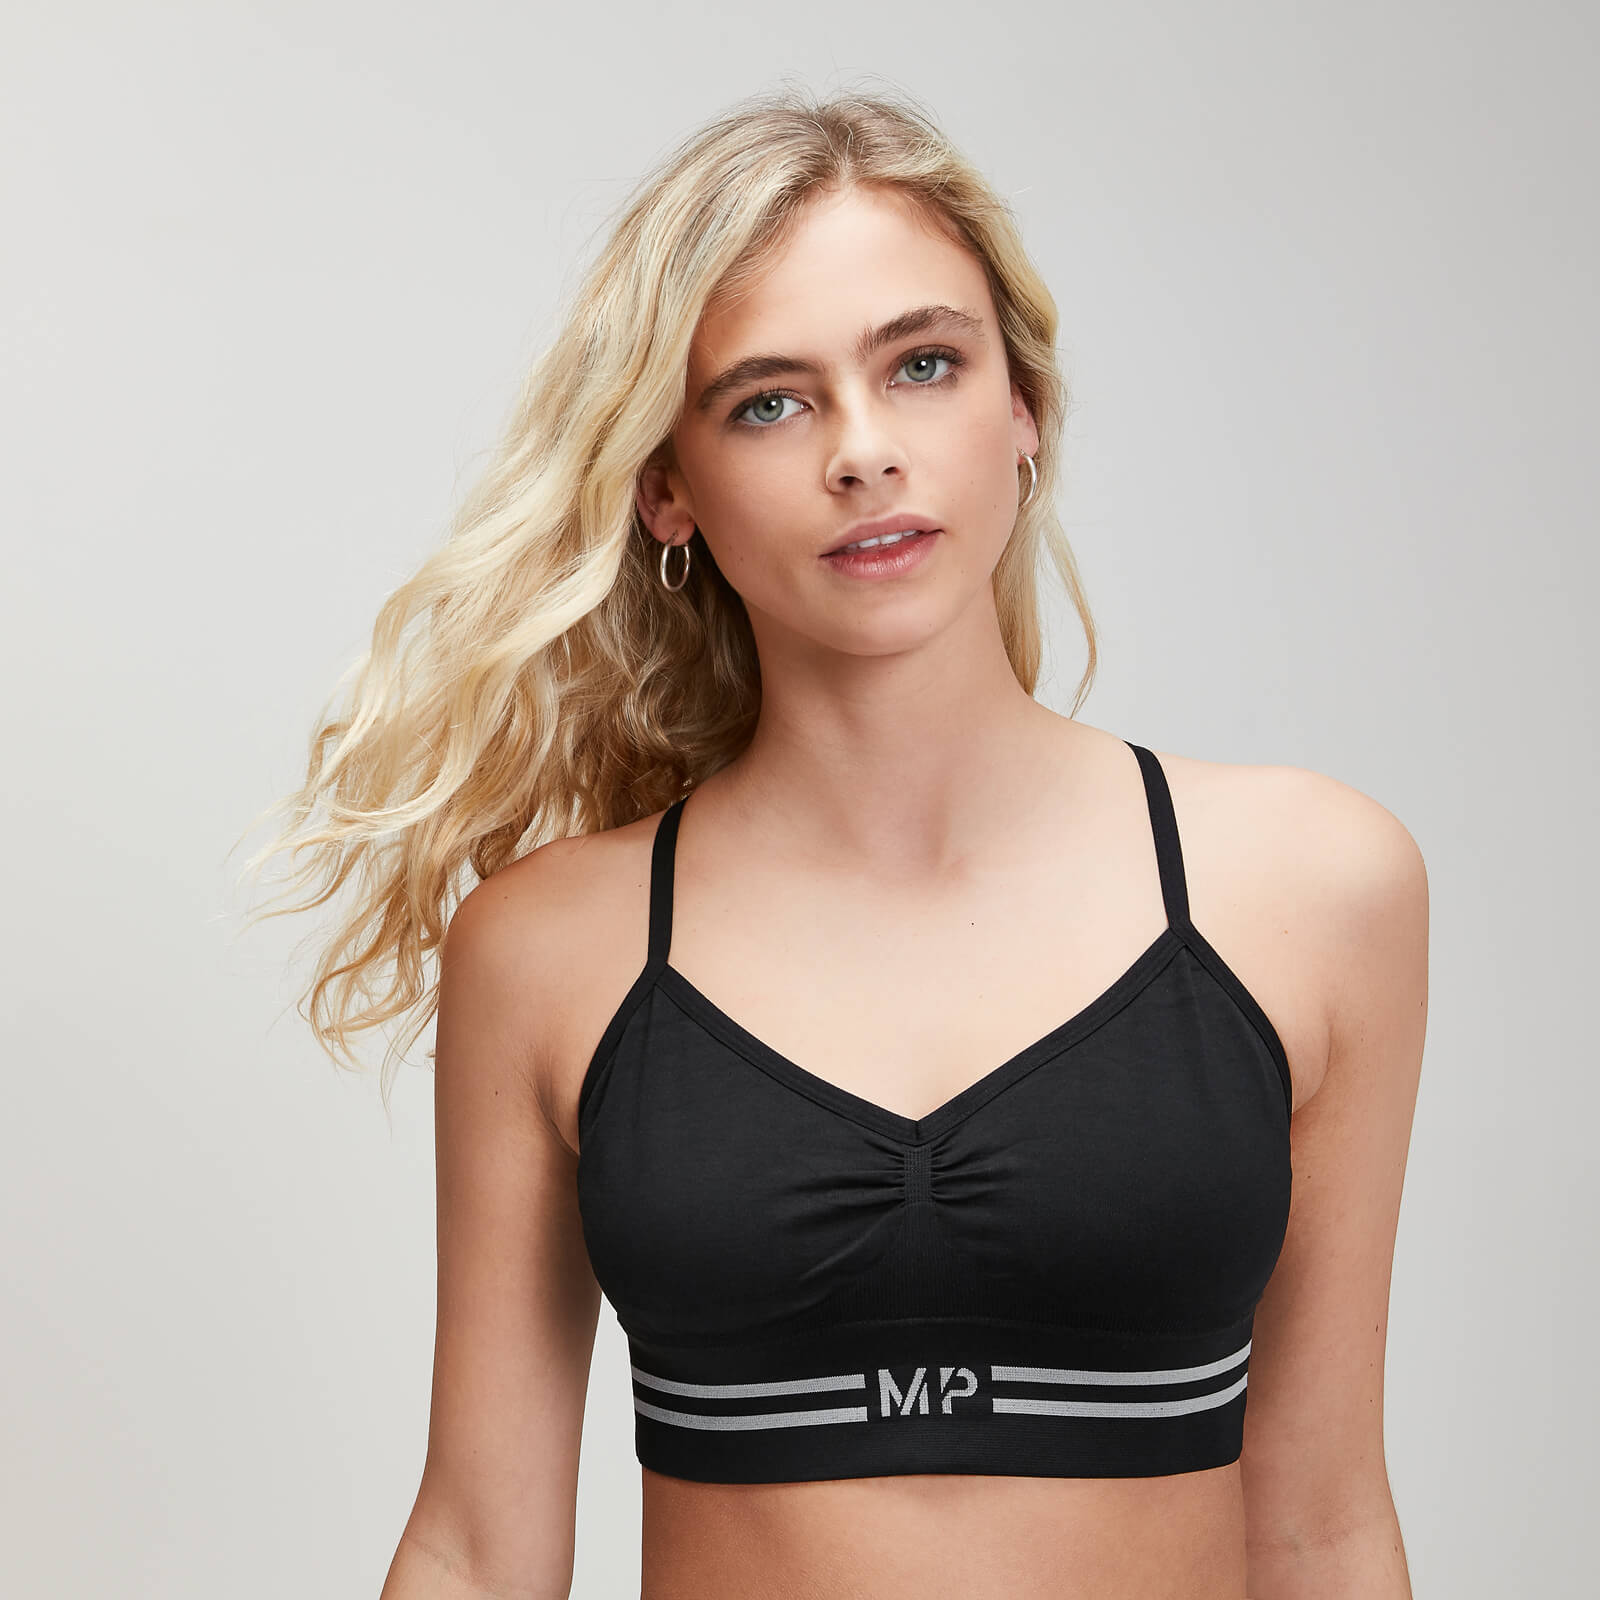 MP Damen Essentials Seamless Bralette - Schwarz - XL von MP